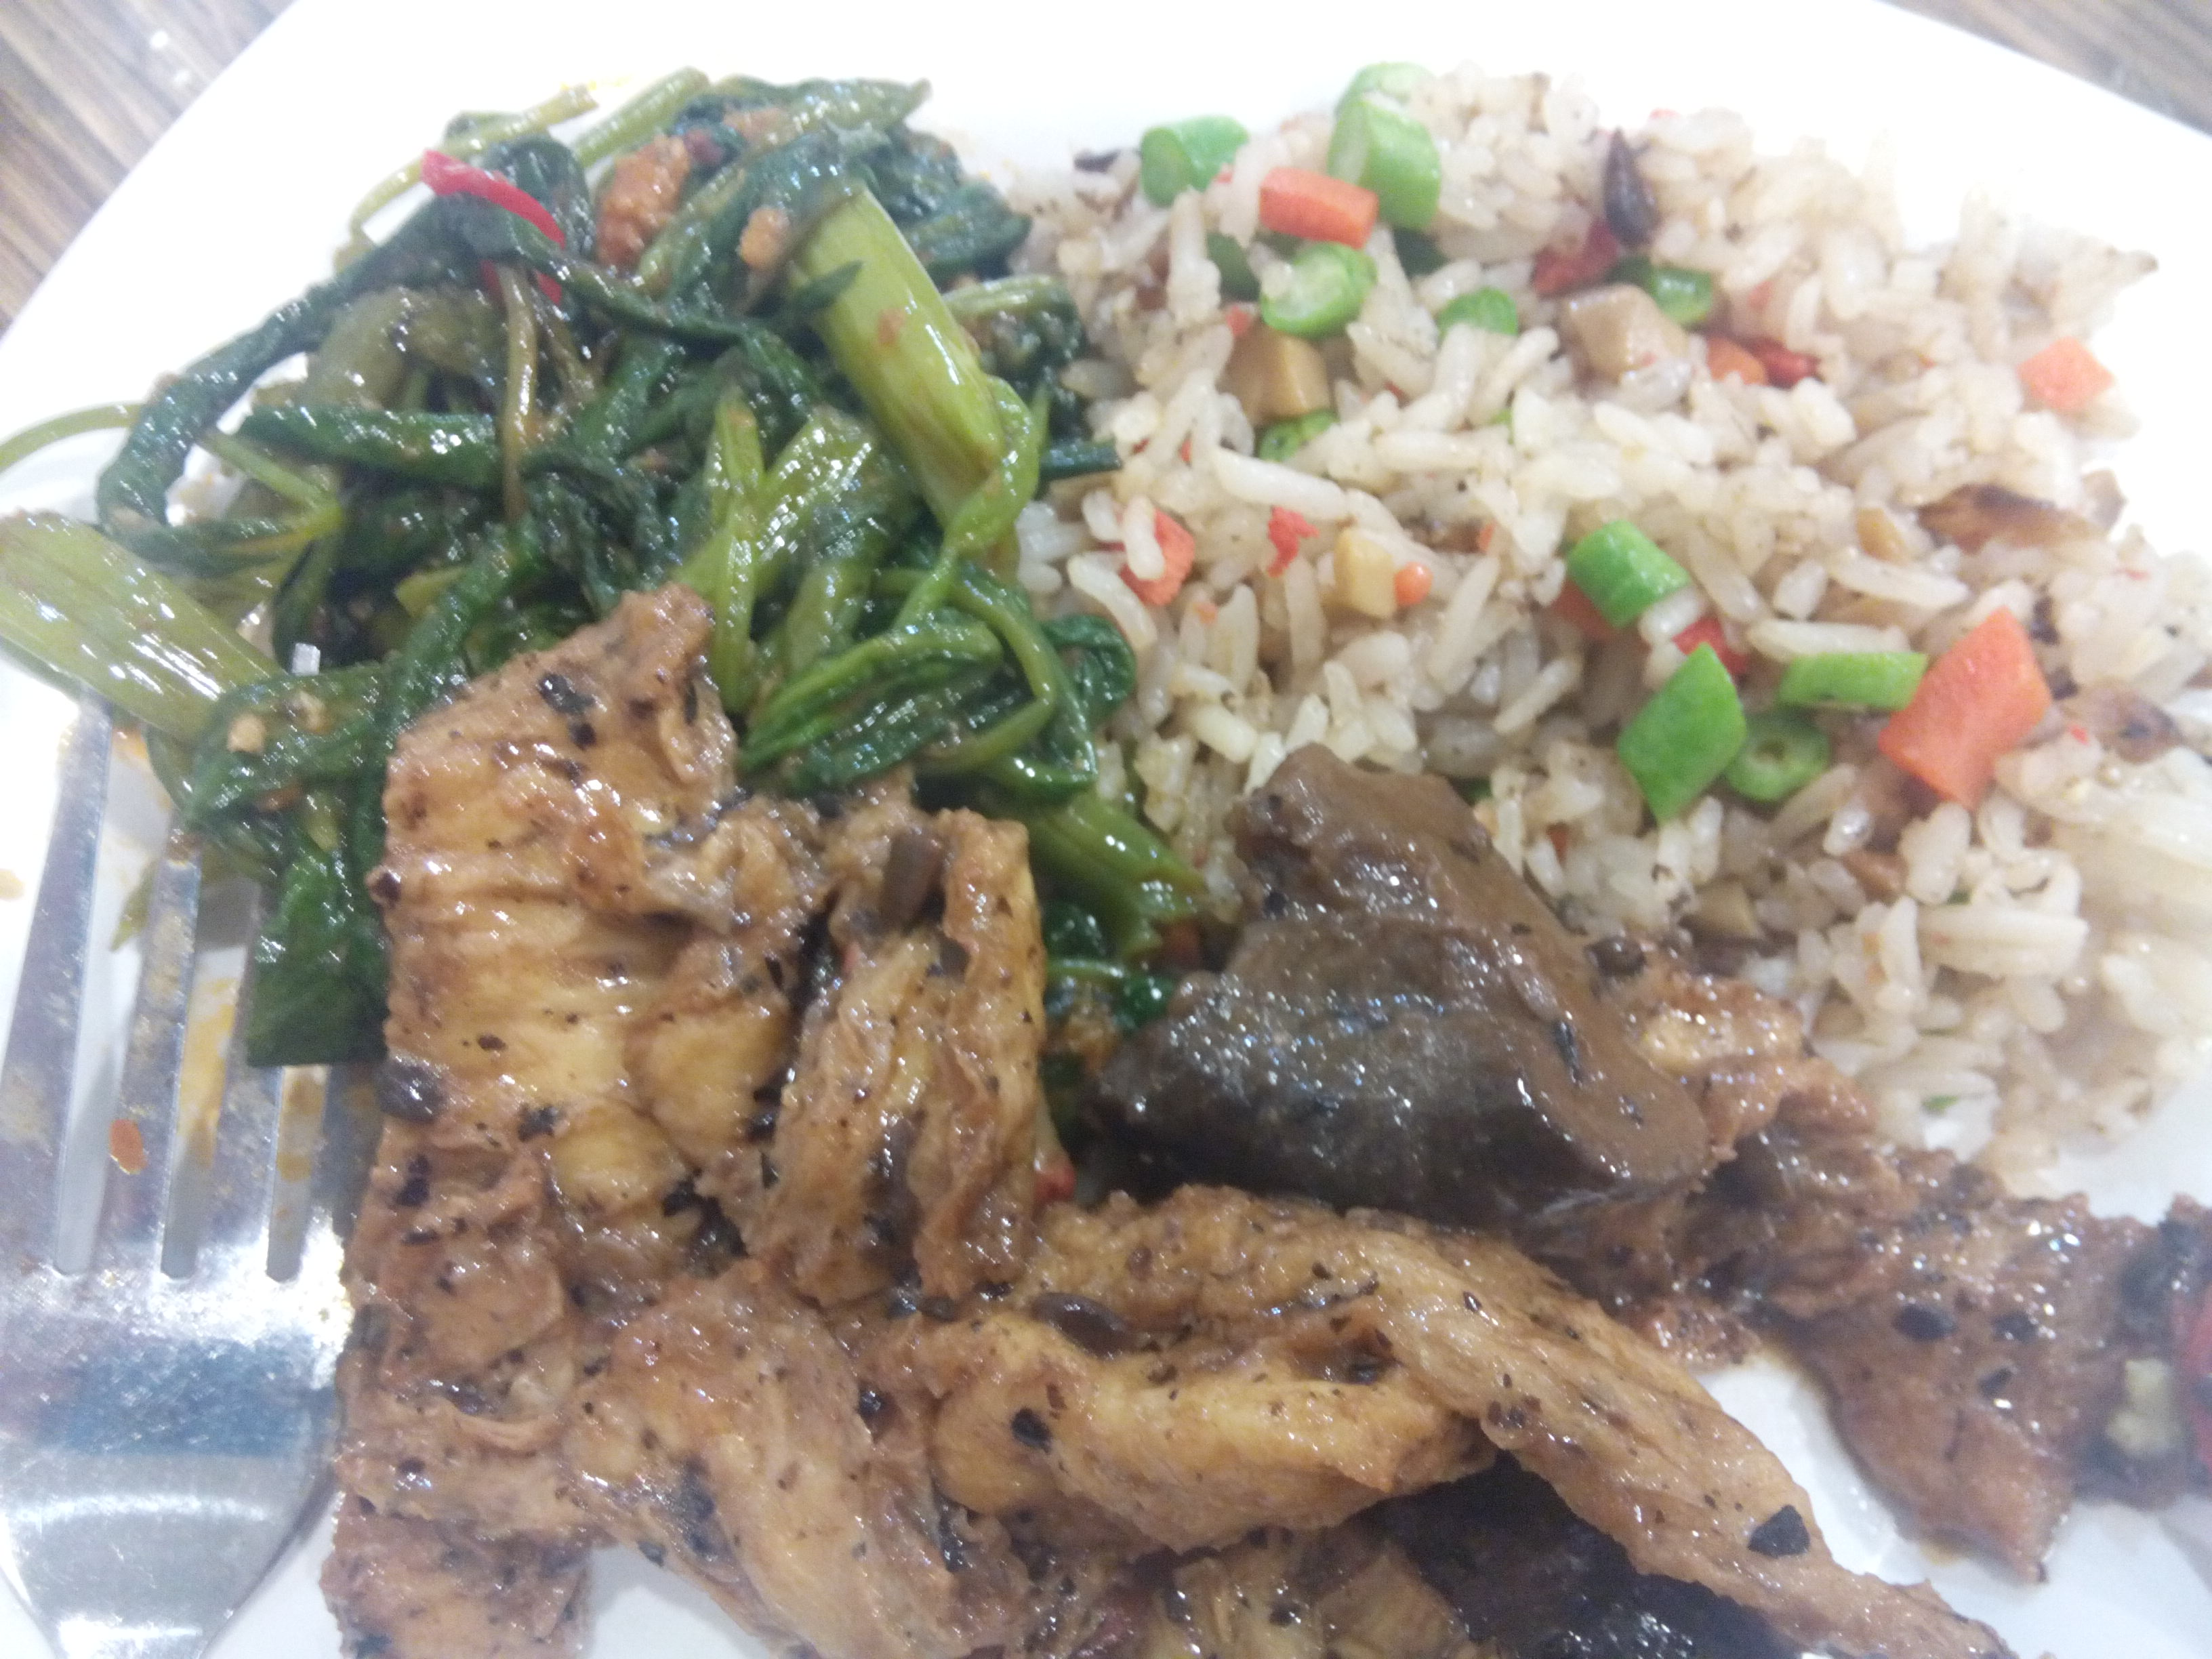 One plate with green leafy vegetables, fried rice, tofu in sauce